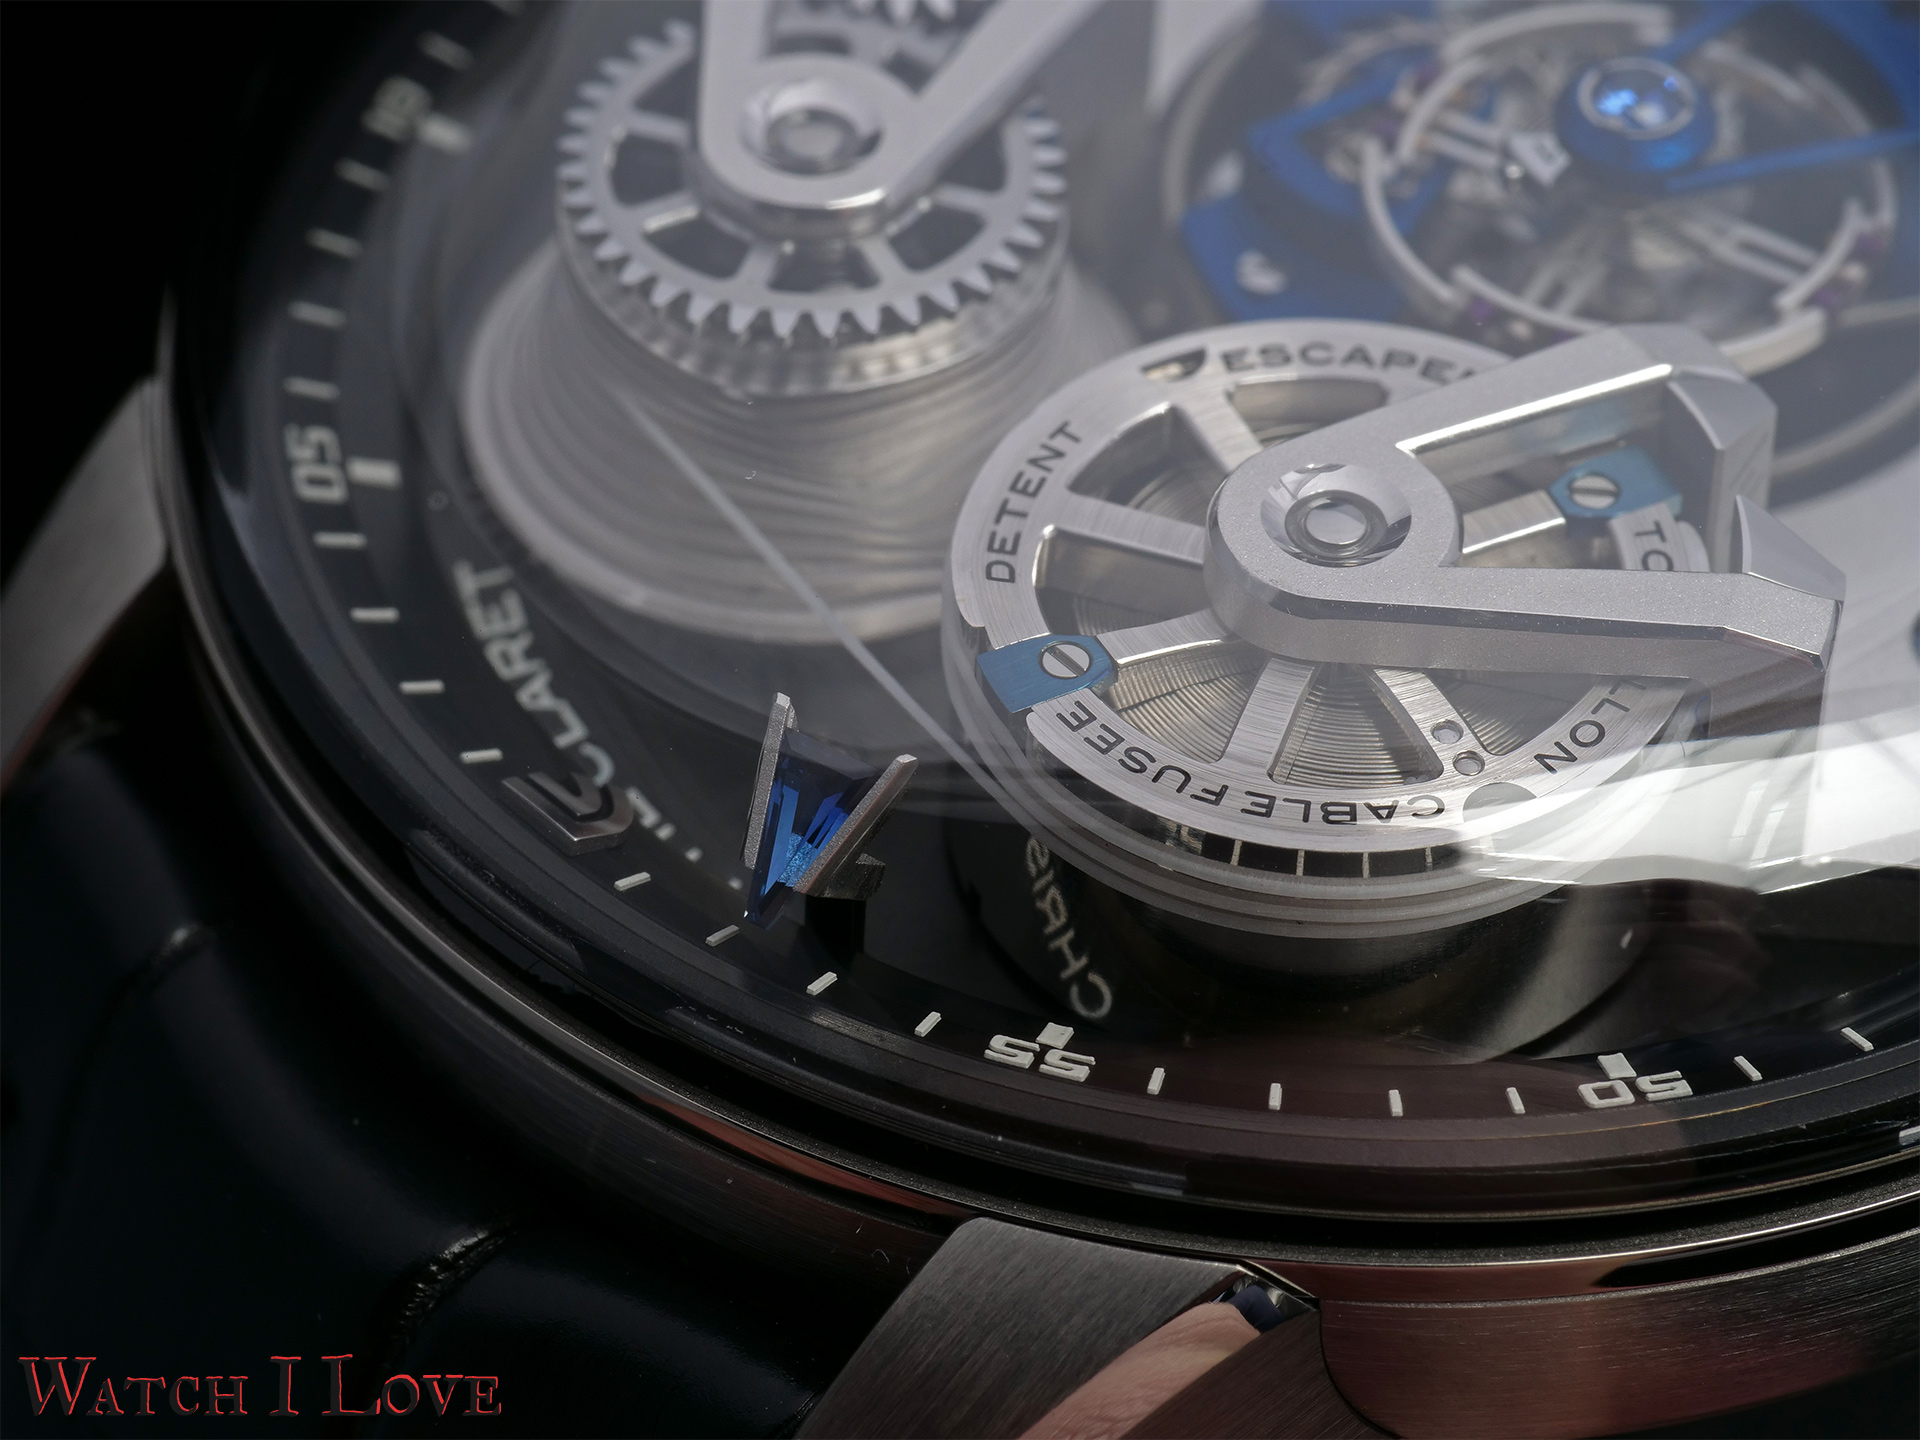 Detail of the cable fusee and minute's hand